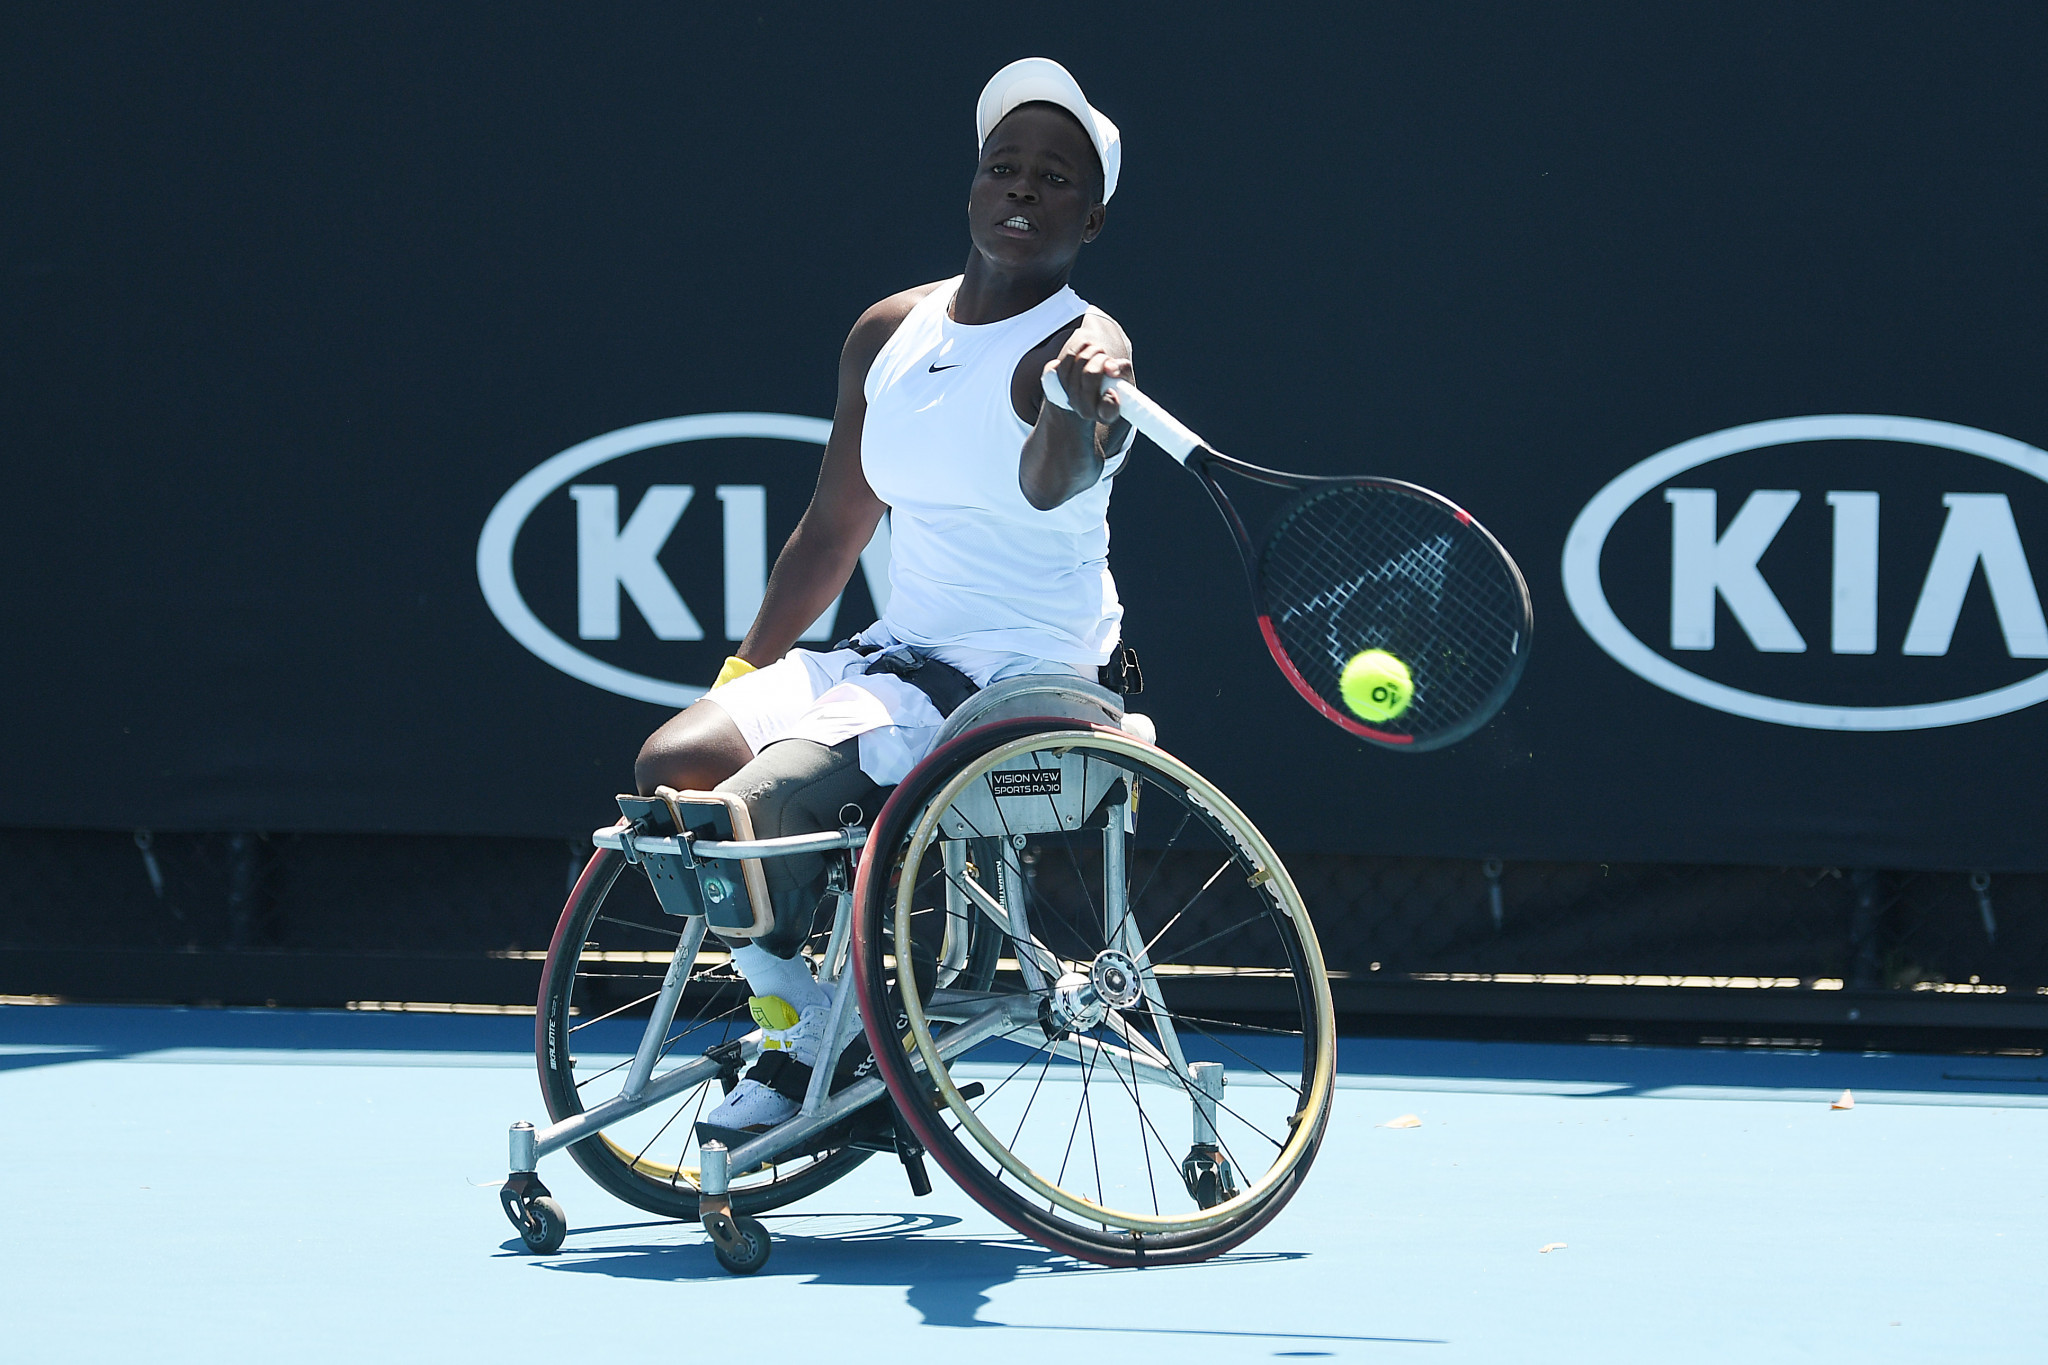 Kgothatso Montjane exited last year's Australian Open at the semi-final stage ©Getty Images